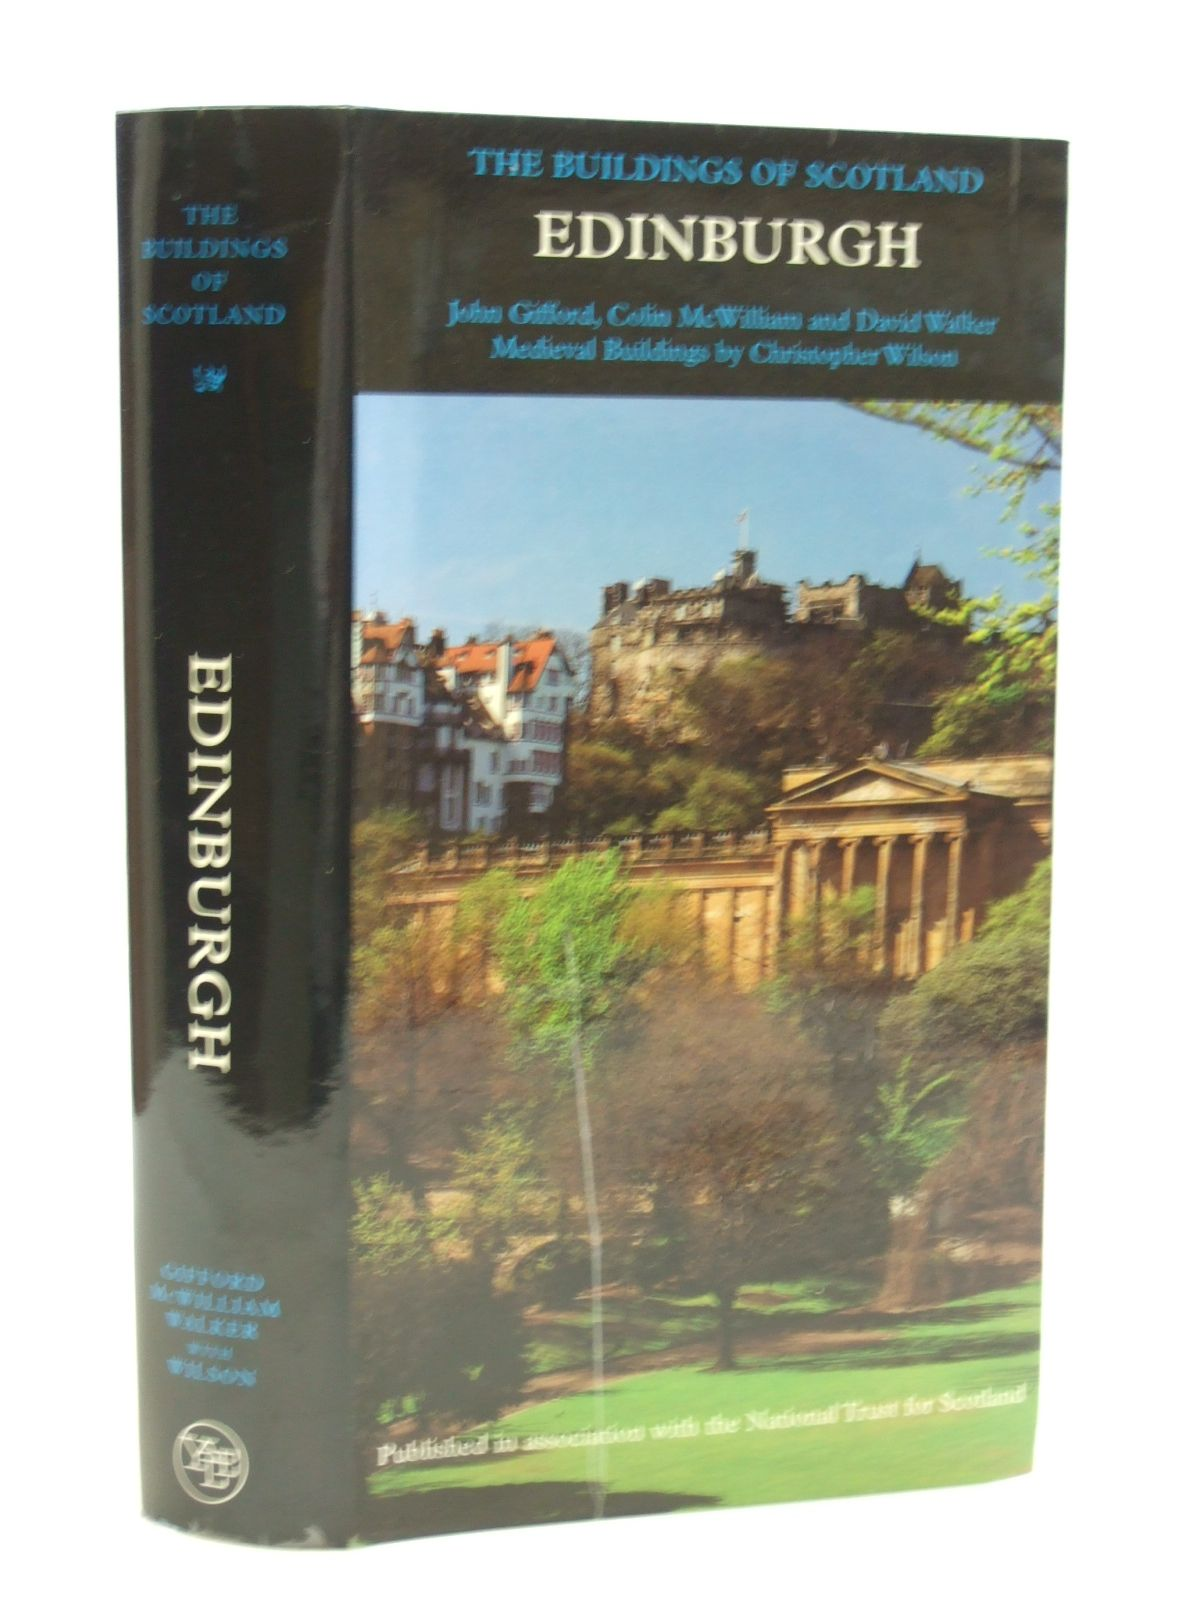 Photo of EDINBURGH (BUILDINGS OF SCOTLAND)